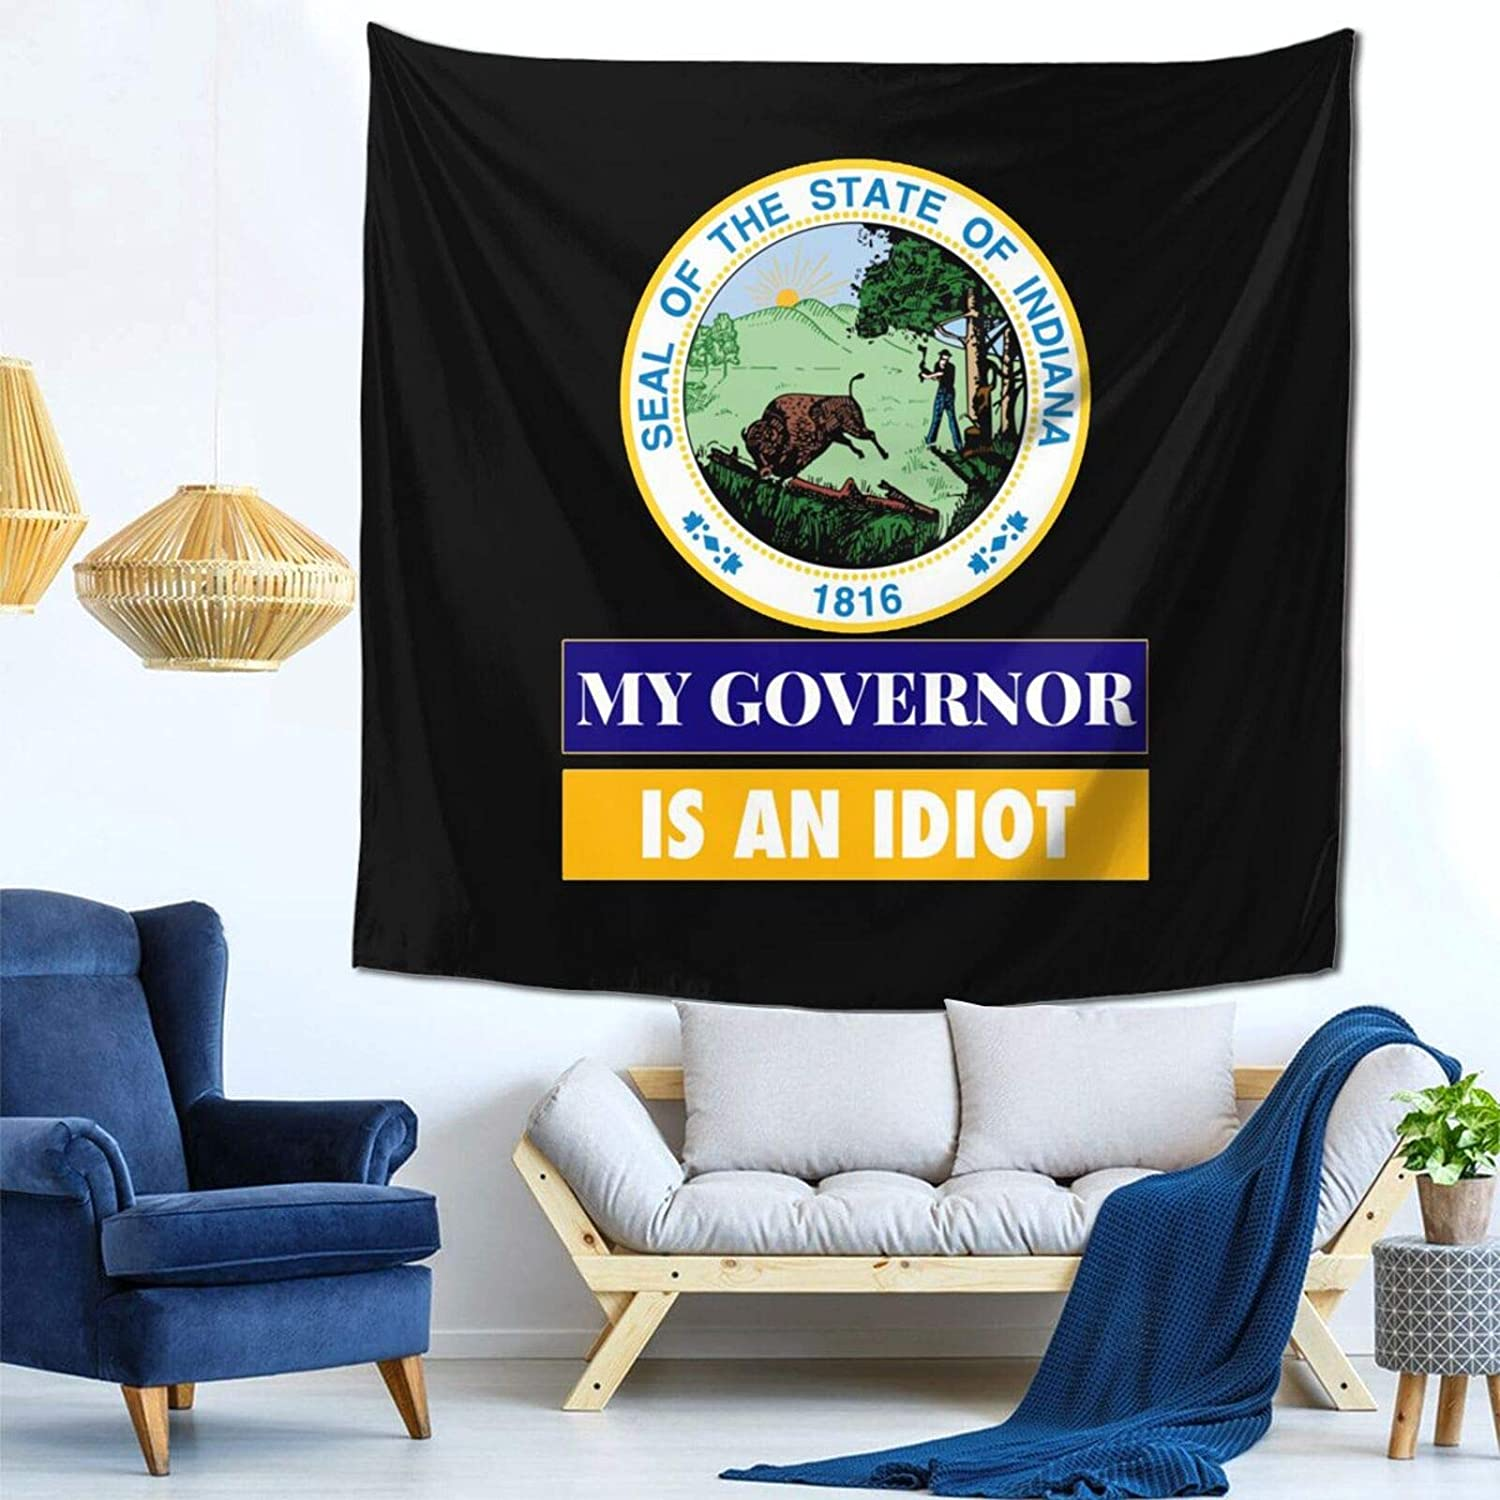 Winbri My Governor is an Indiana Idaho Tapestry Wall Hanging Home Decor Fan Art for Bedroom Living Room Dorm 59x59 Inch